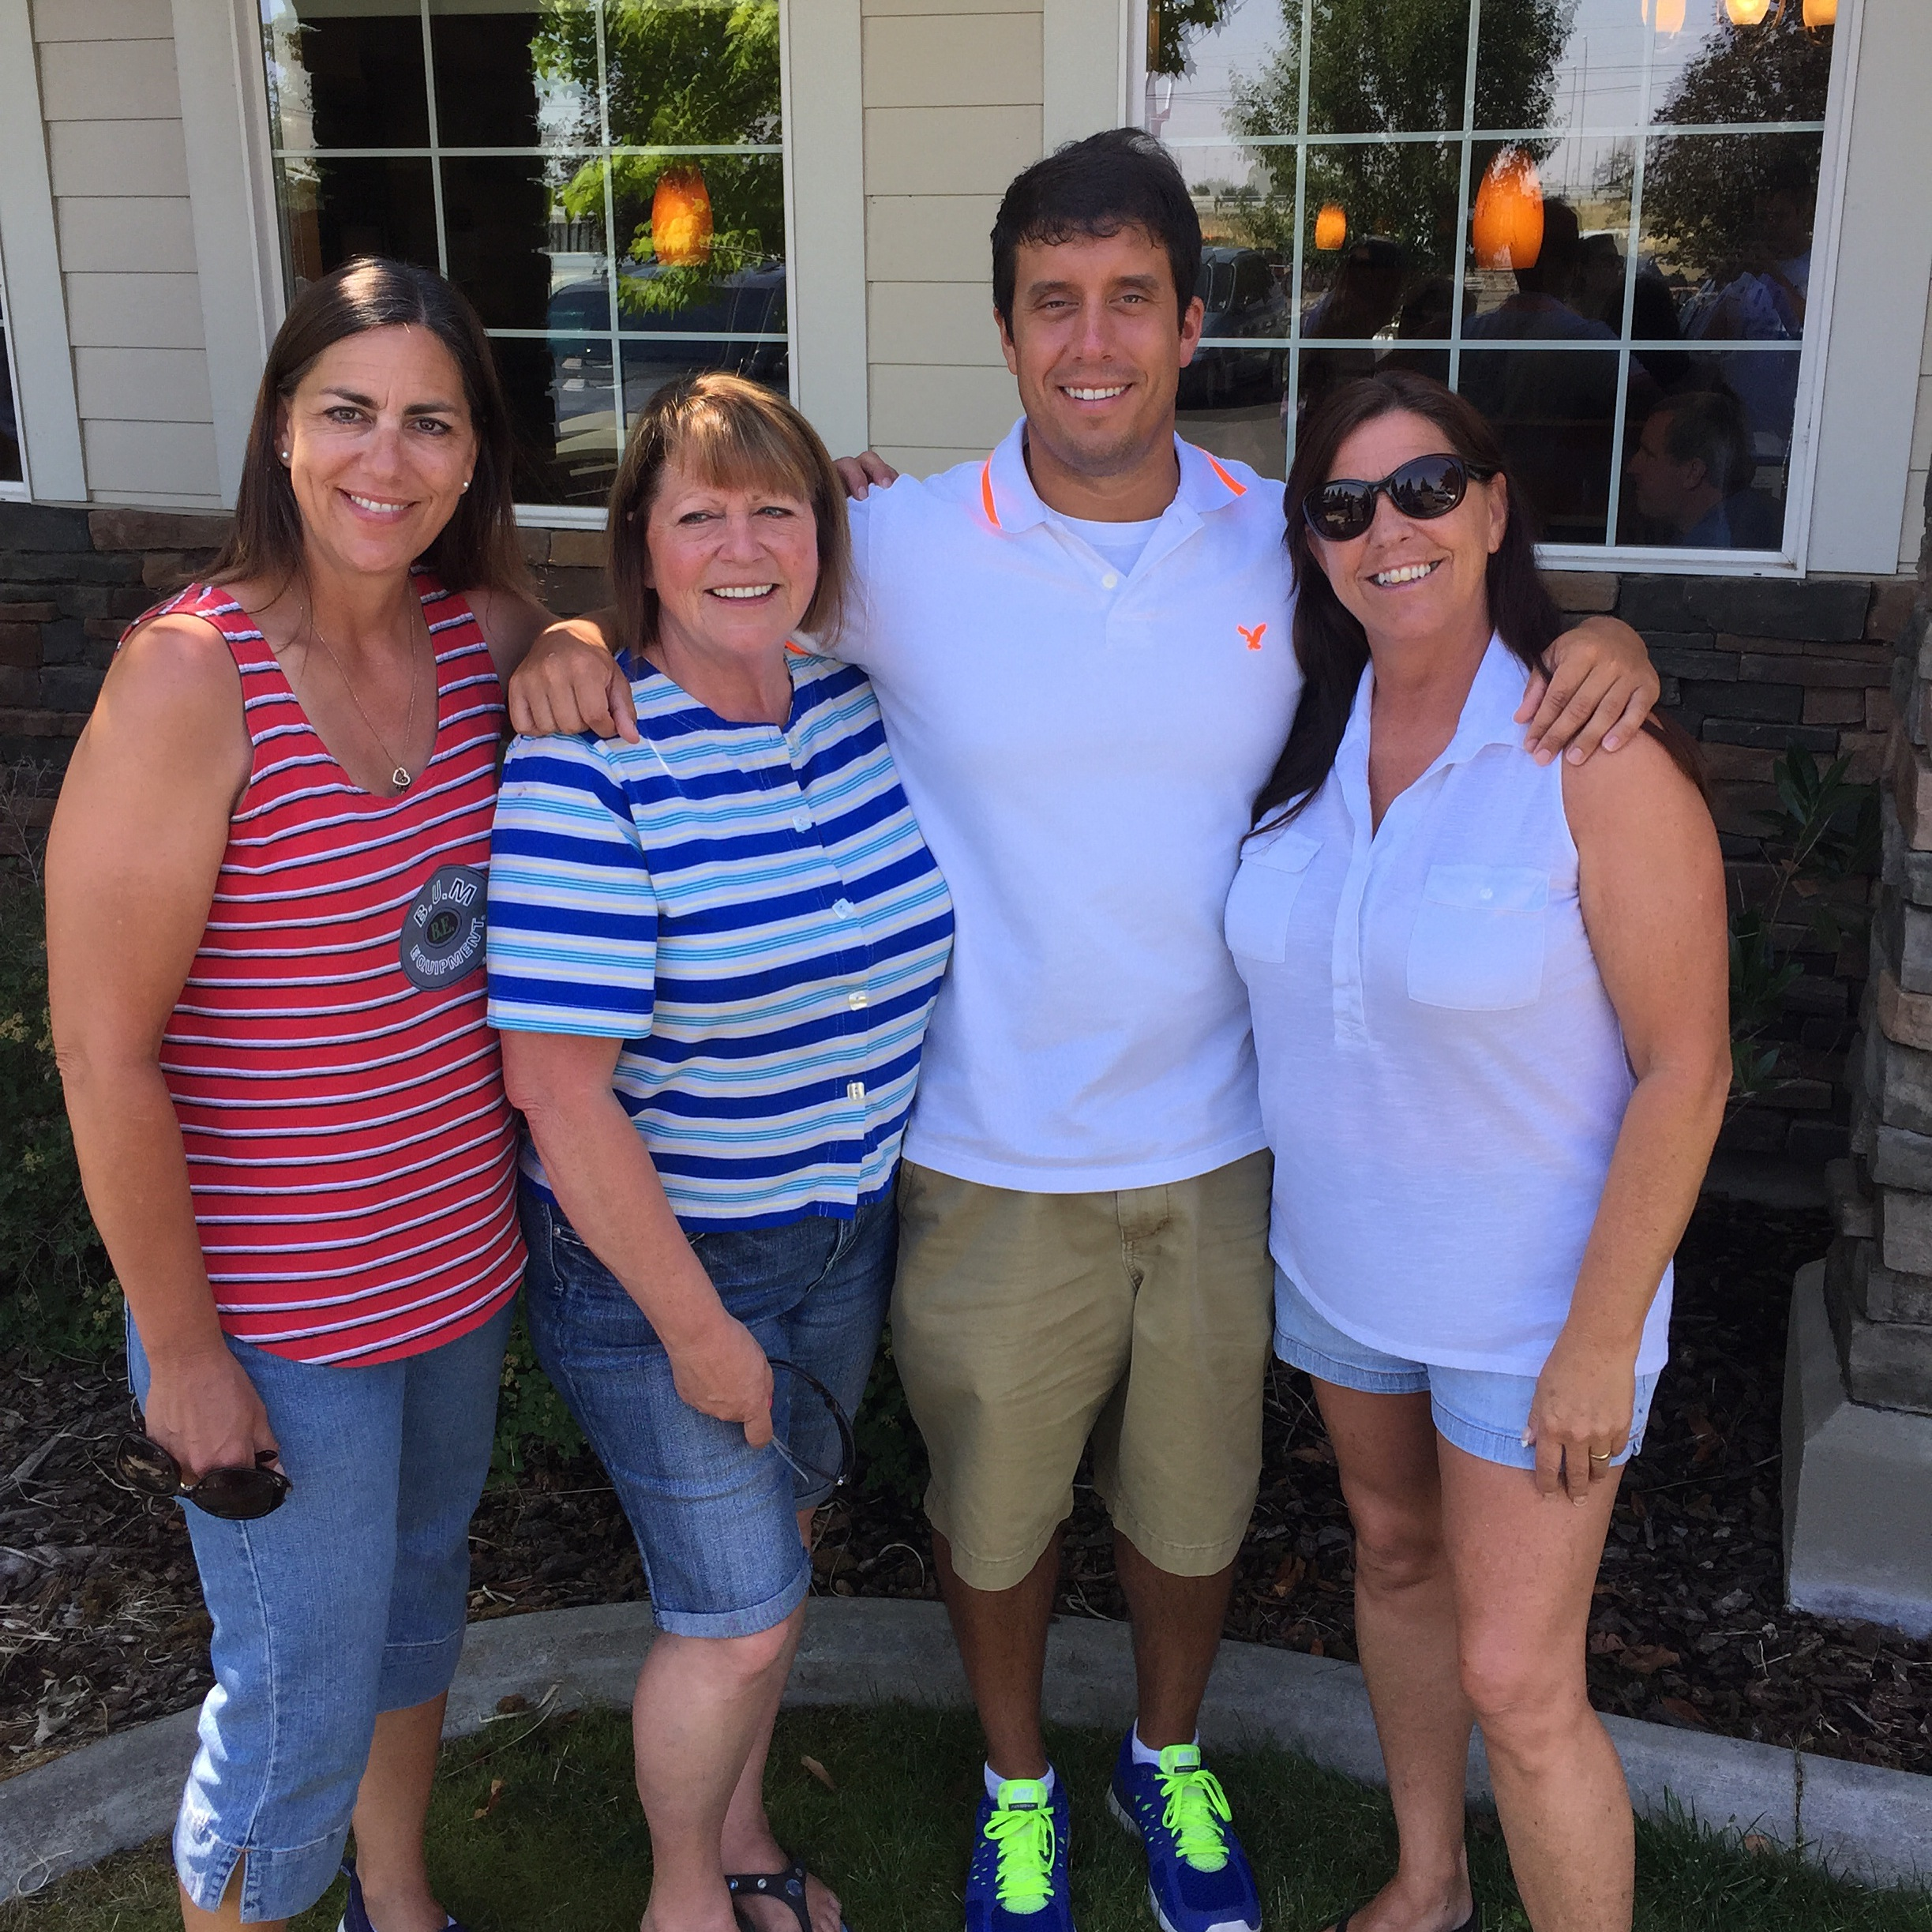 Me with my Aunt Debbie, Aunt Nancy, and Aunt Judy after breakfast on Sunday.